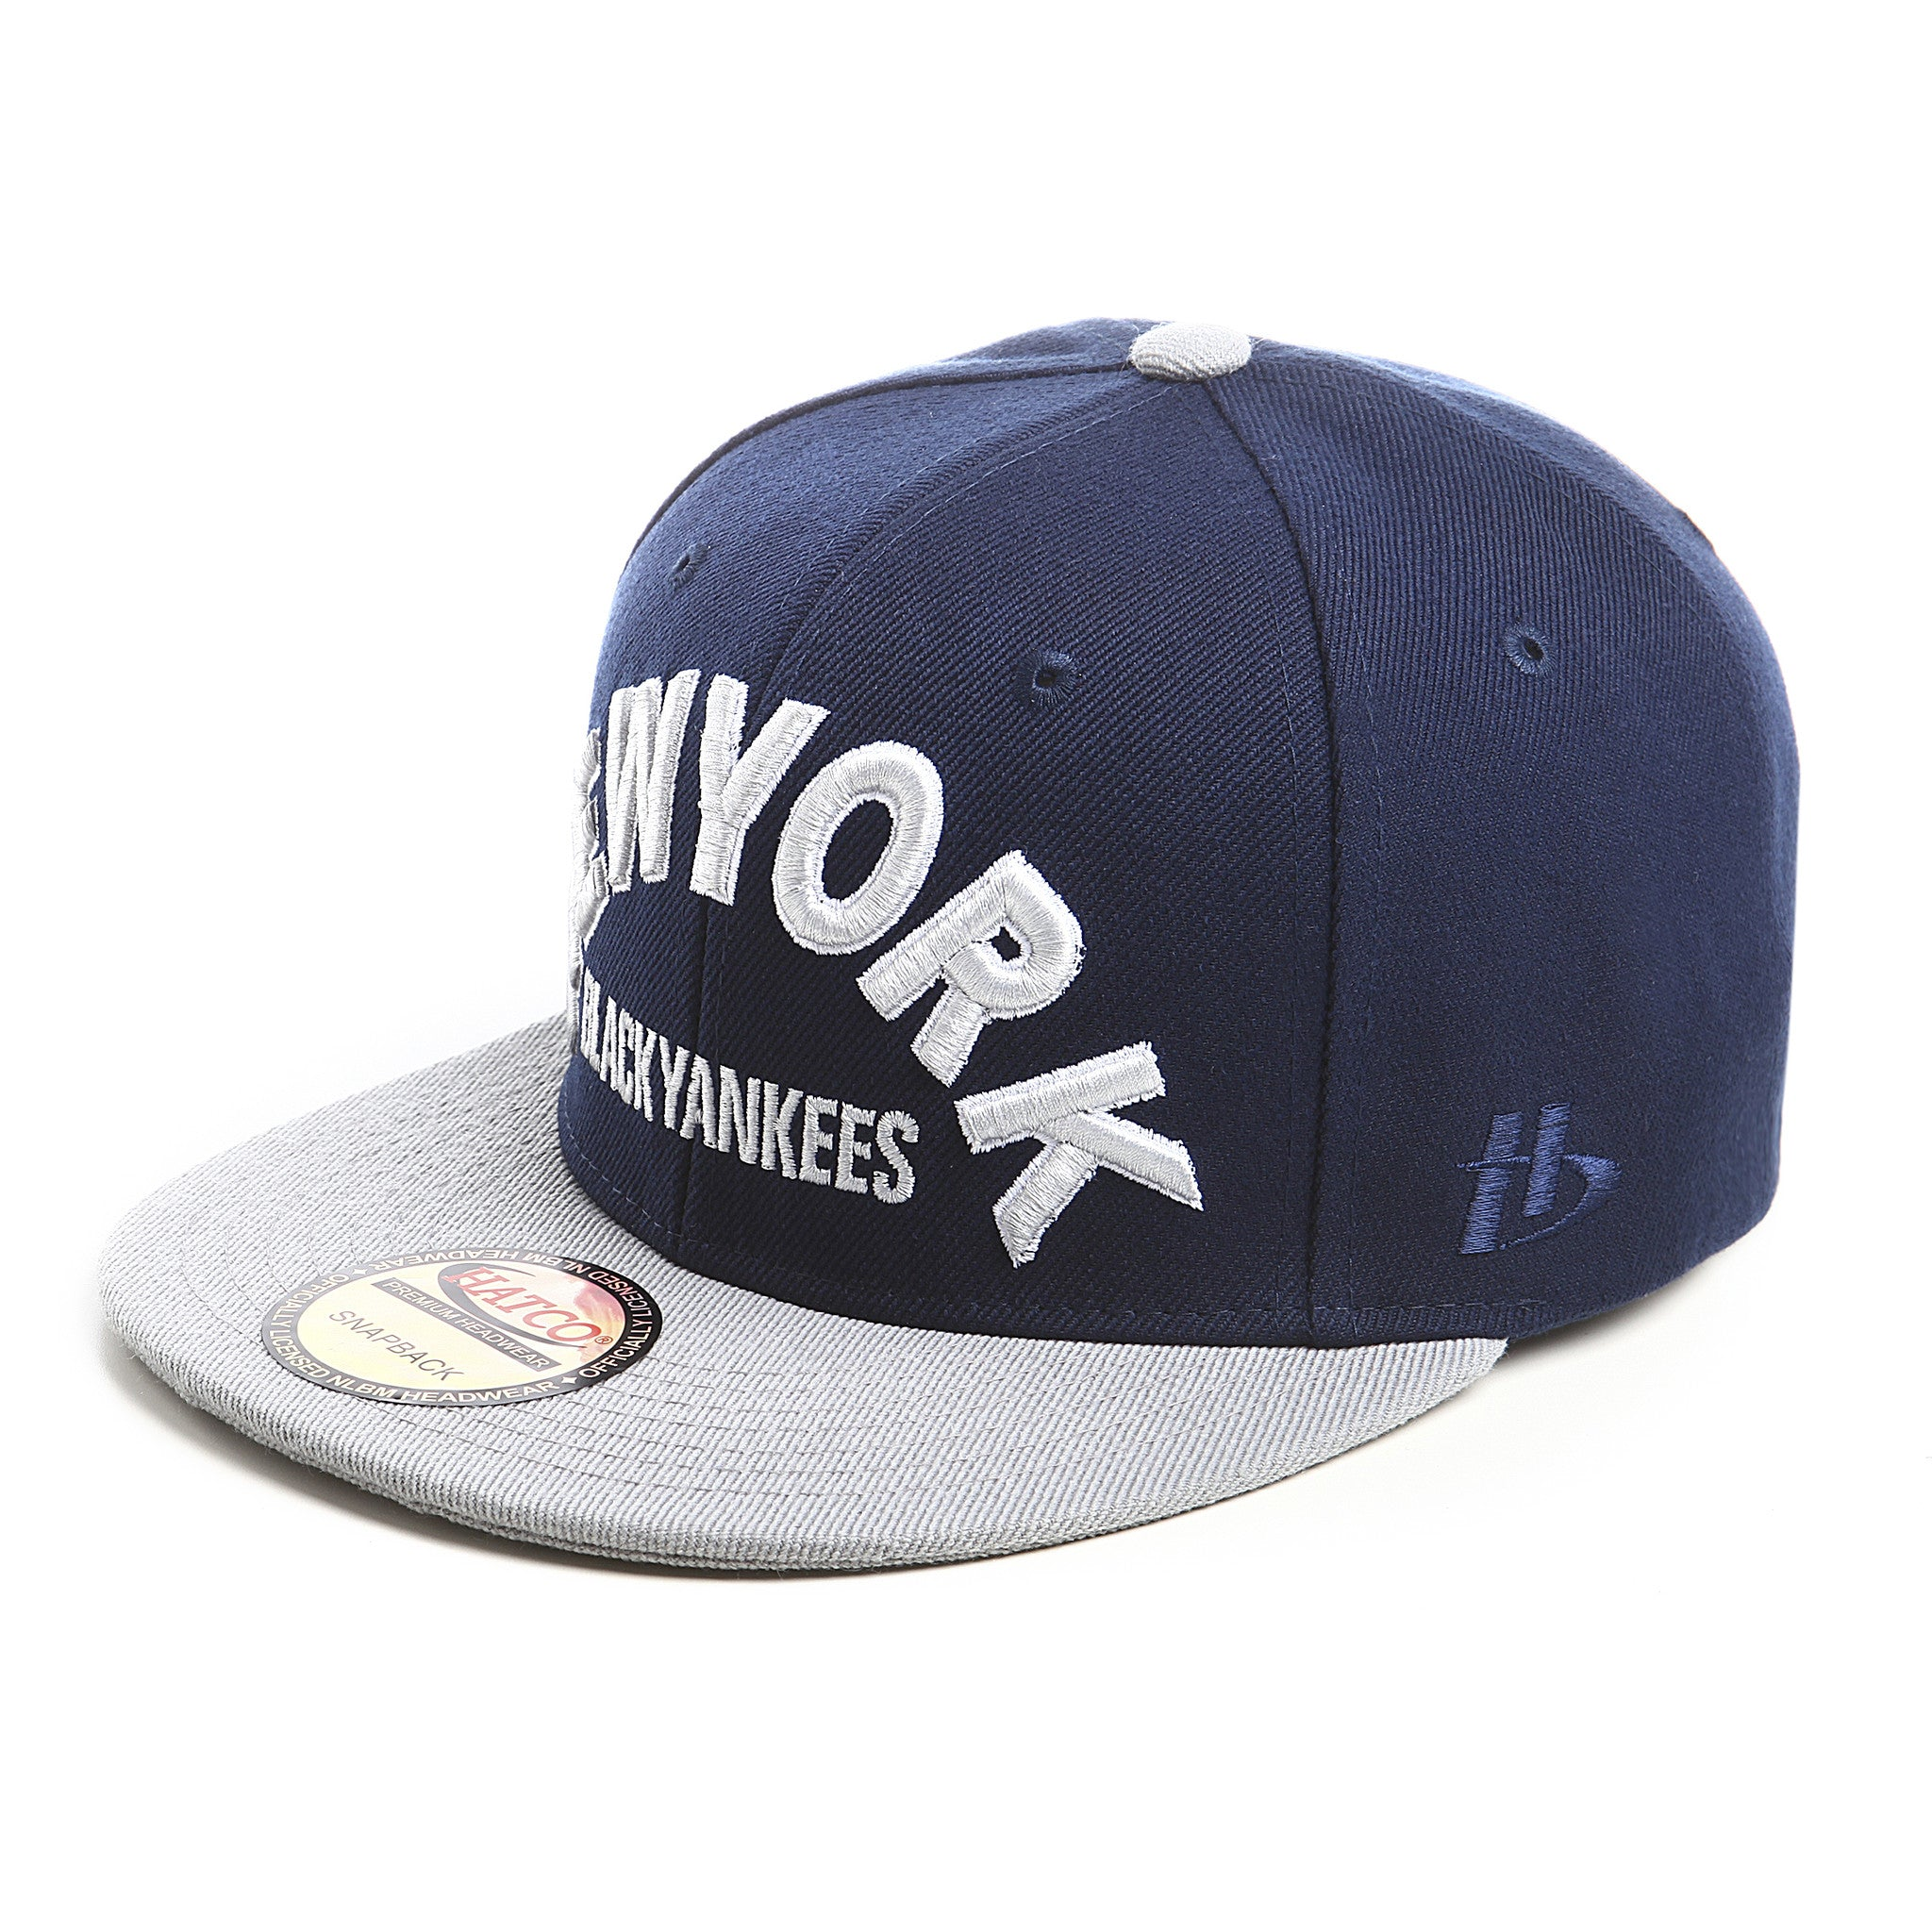 fc9f0a6a2ba ... purchase nlbm snapback cap new york black yankees letters kids  hatcocaps. ebb2d 0494c